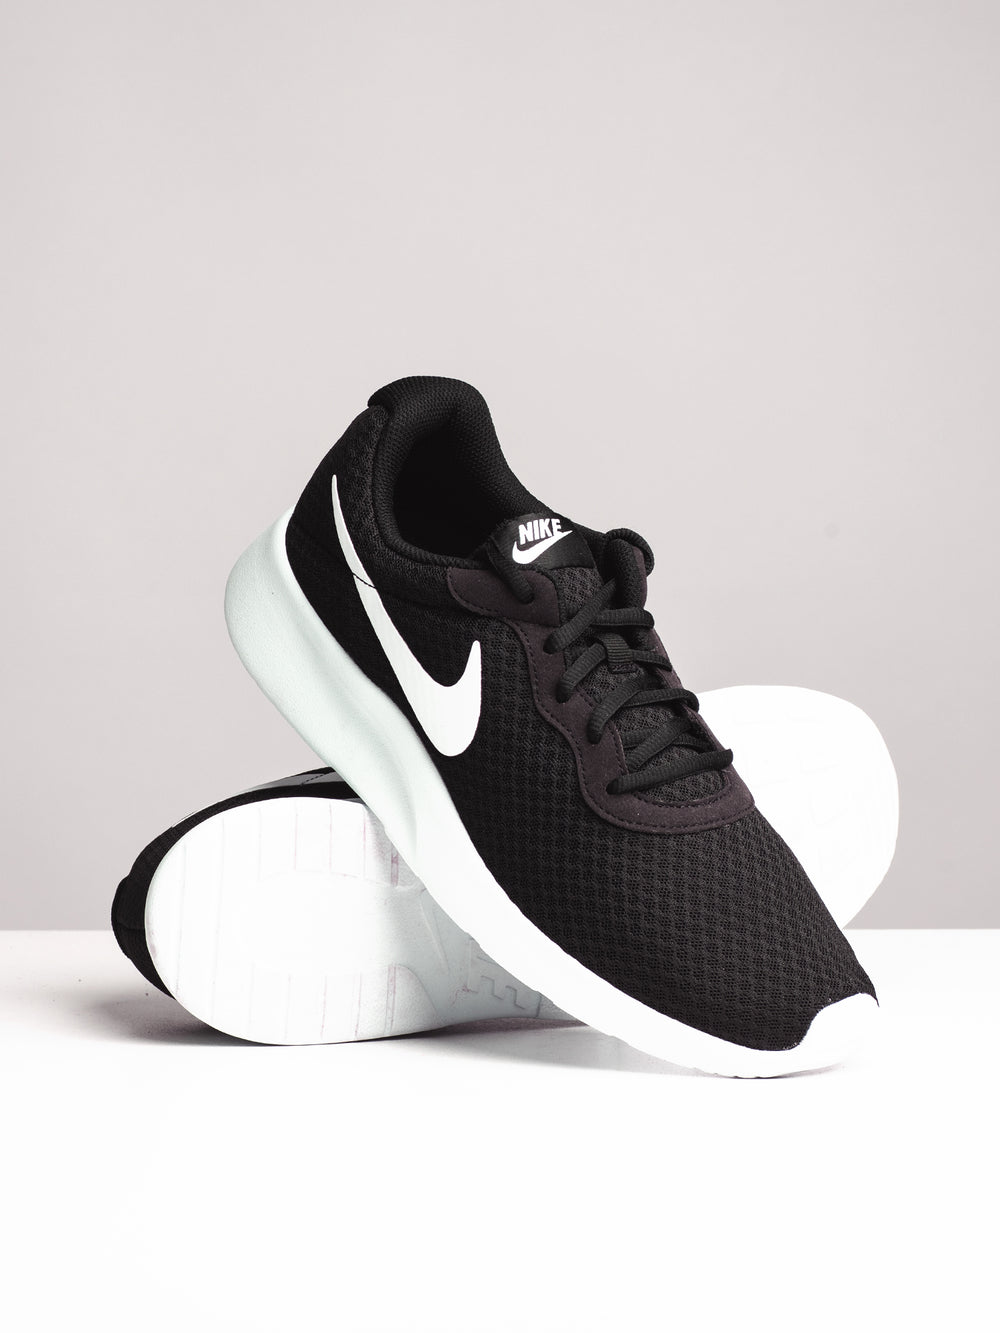 MENS TANJUN BLACK/WHITE SNEAKERS